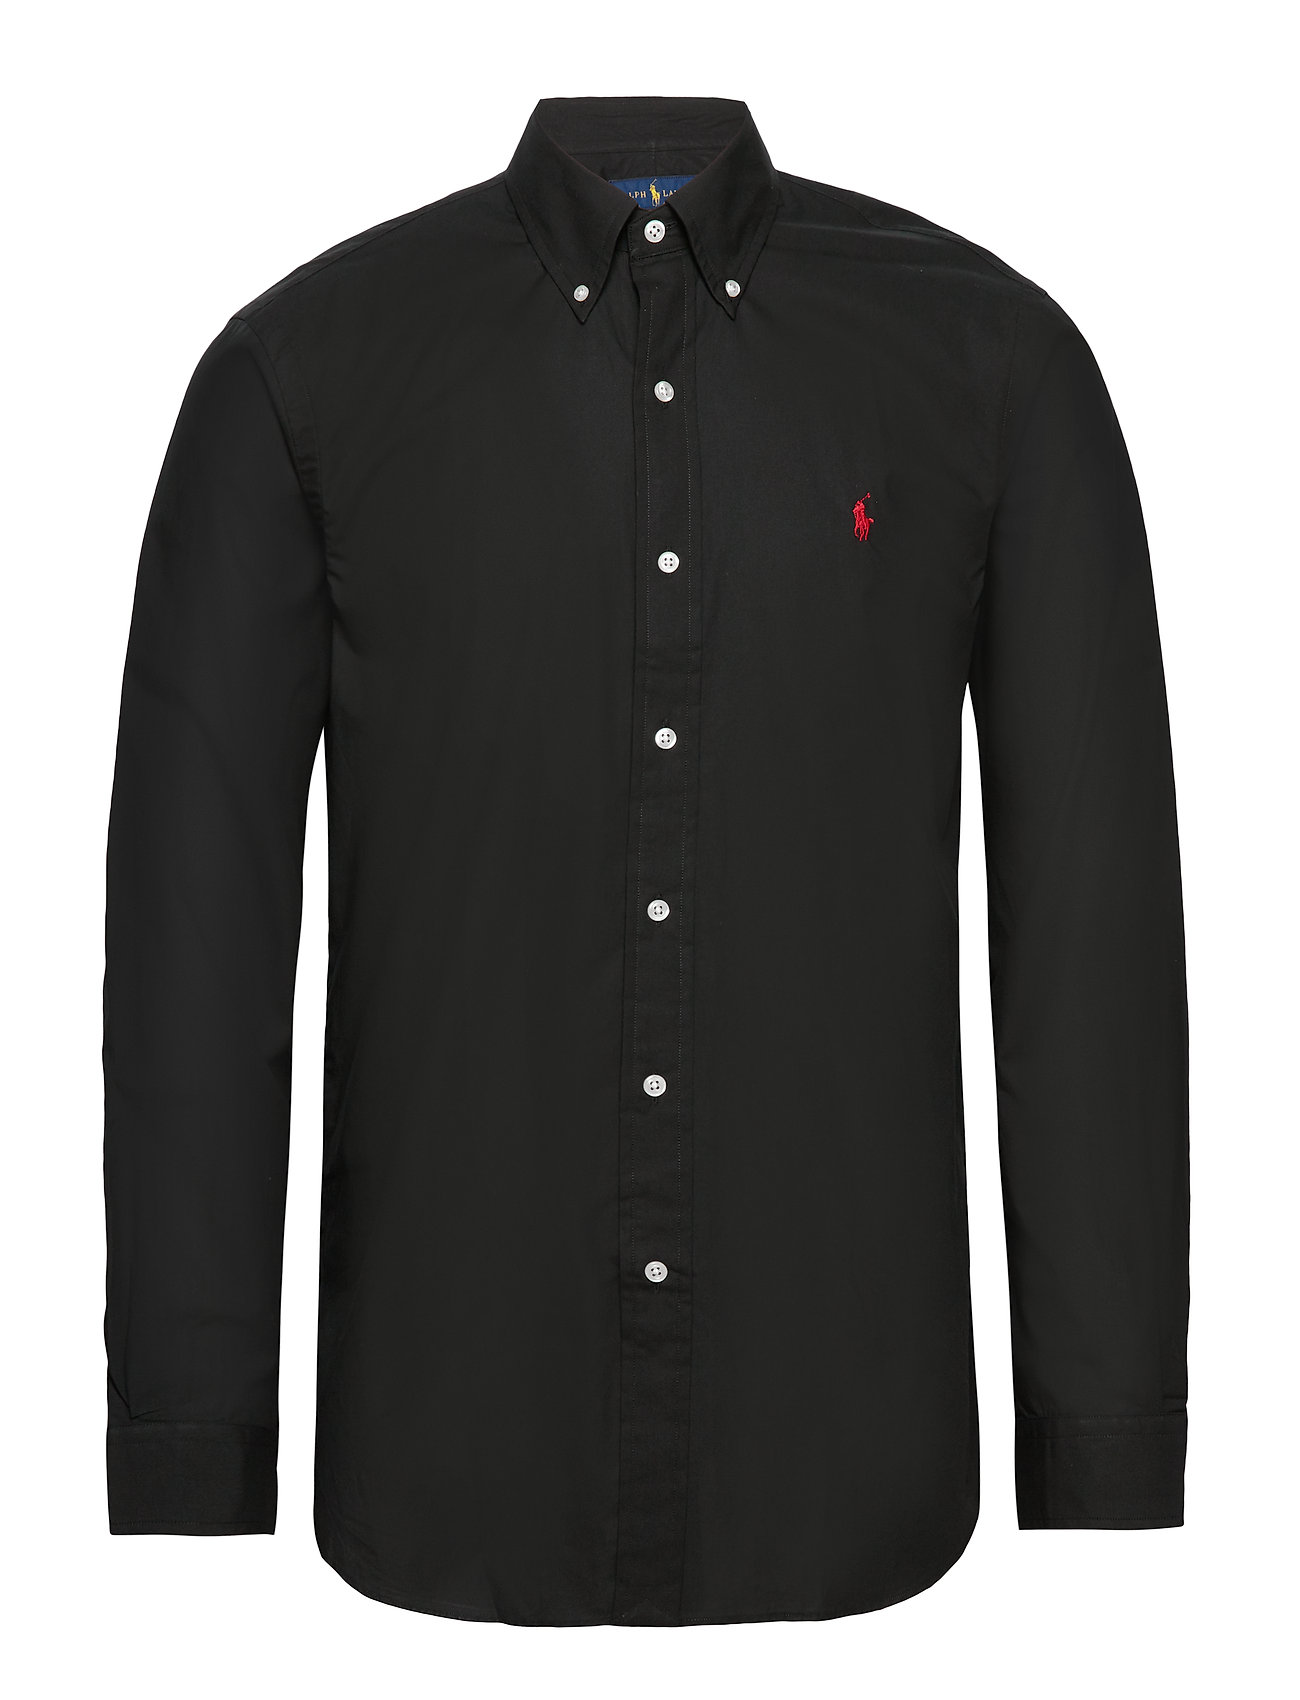 Polo Ralph Lauren NATURAL STRTCH PPLN-CUBDPPCS - POLO BLACK